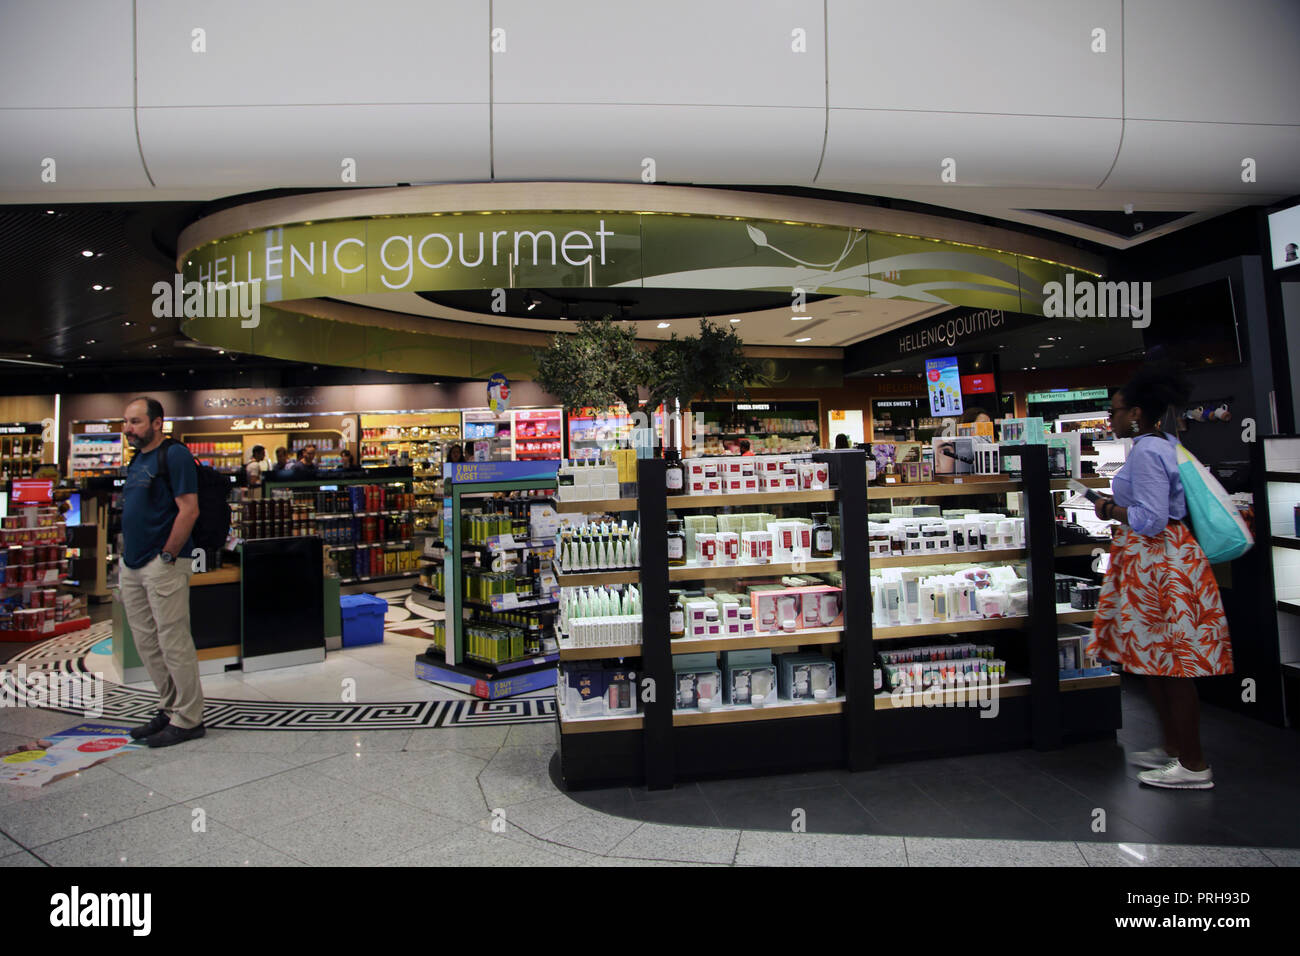 Athens Greece Athens Airport Duty Free People Shopping In Hellenic Gourmet Food Shop - Stock Image